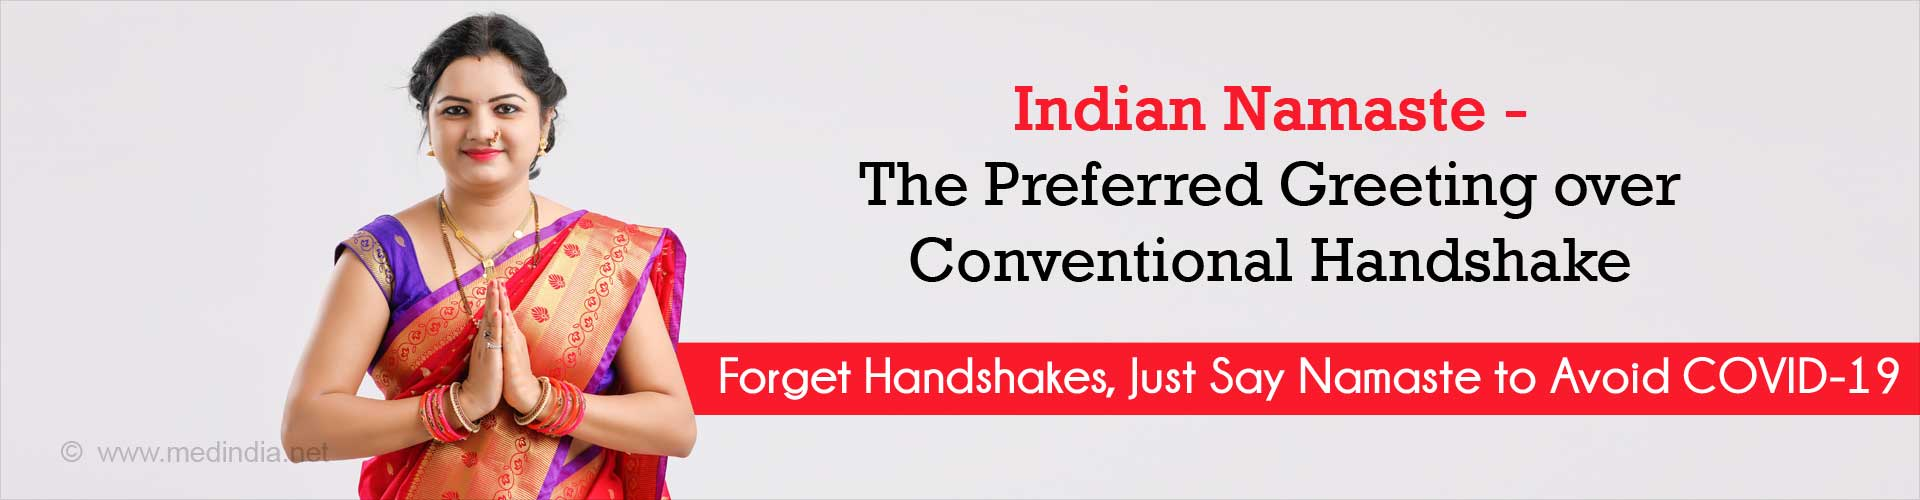 ndian Namaste the Preferred Greeting over Conventional Handshake